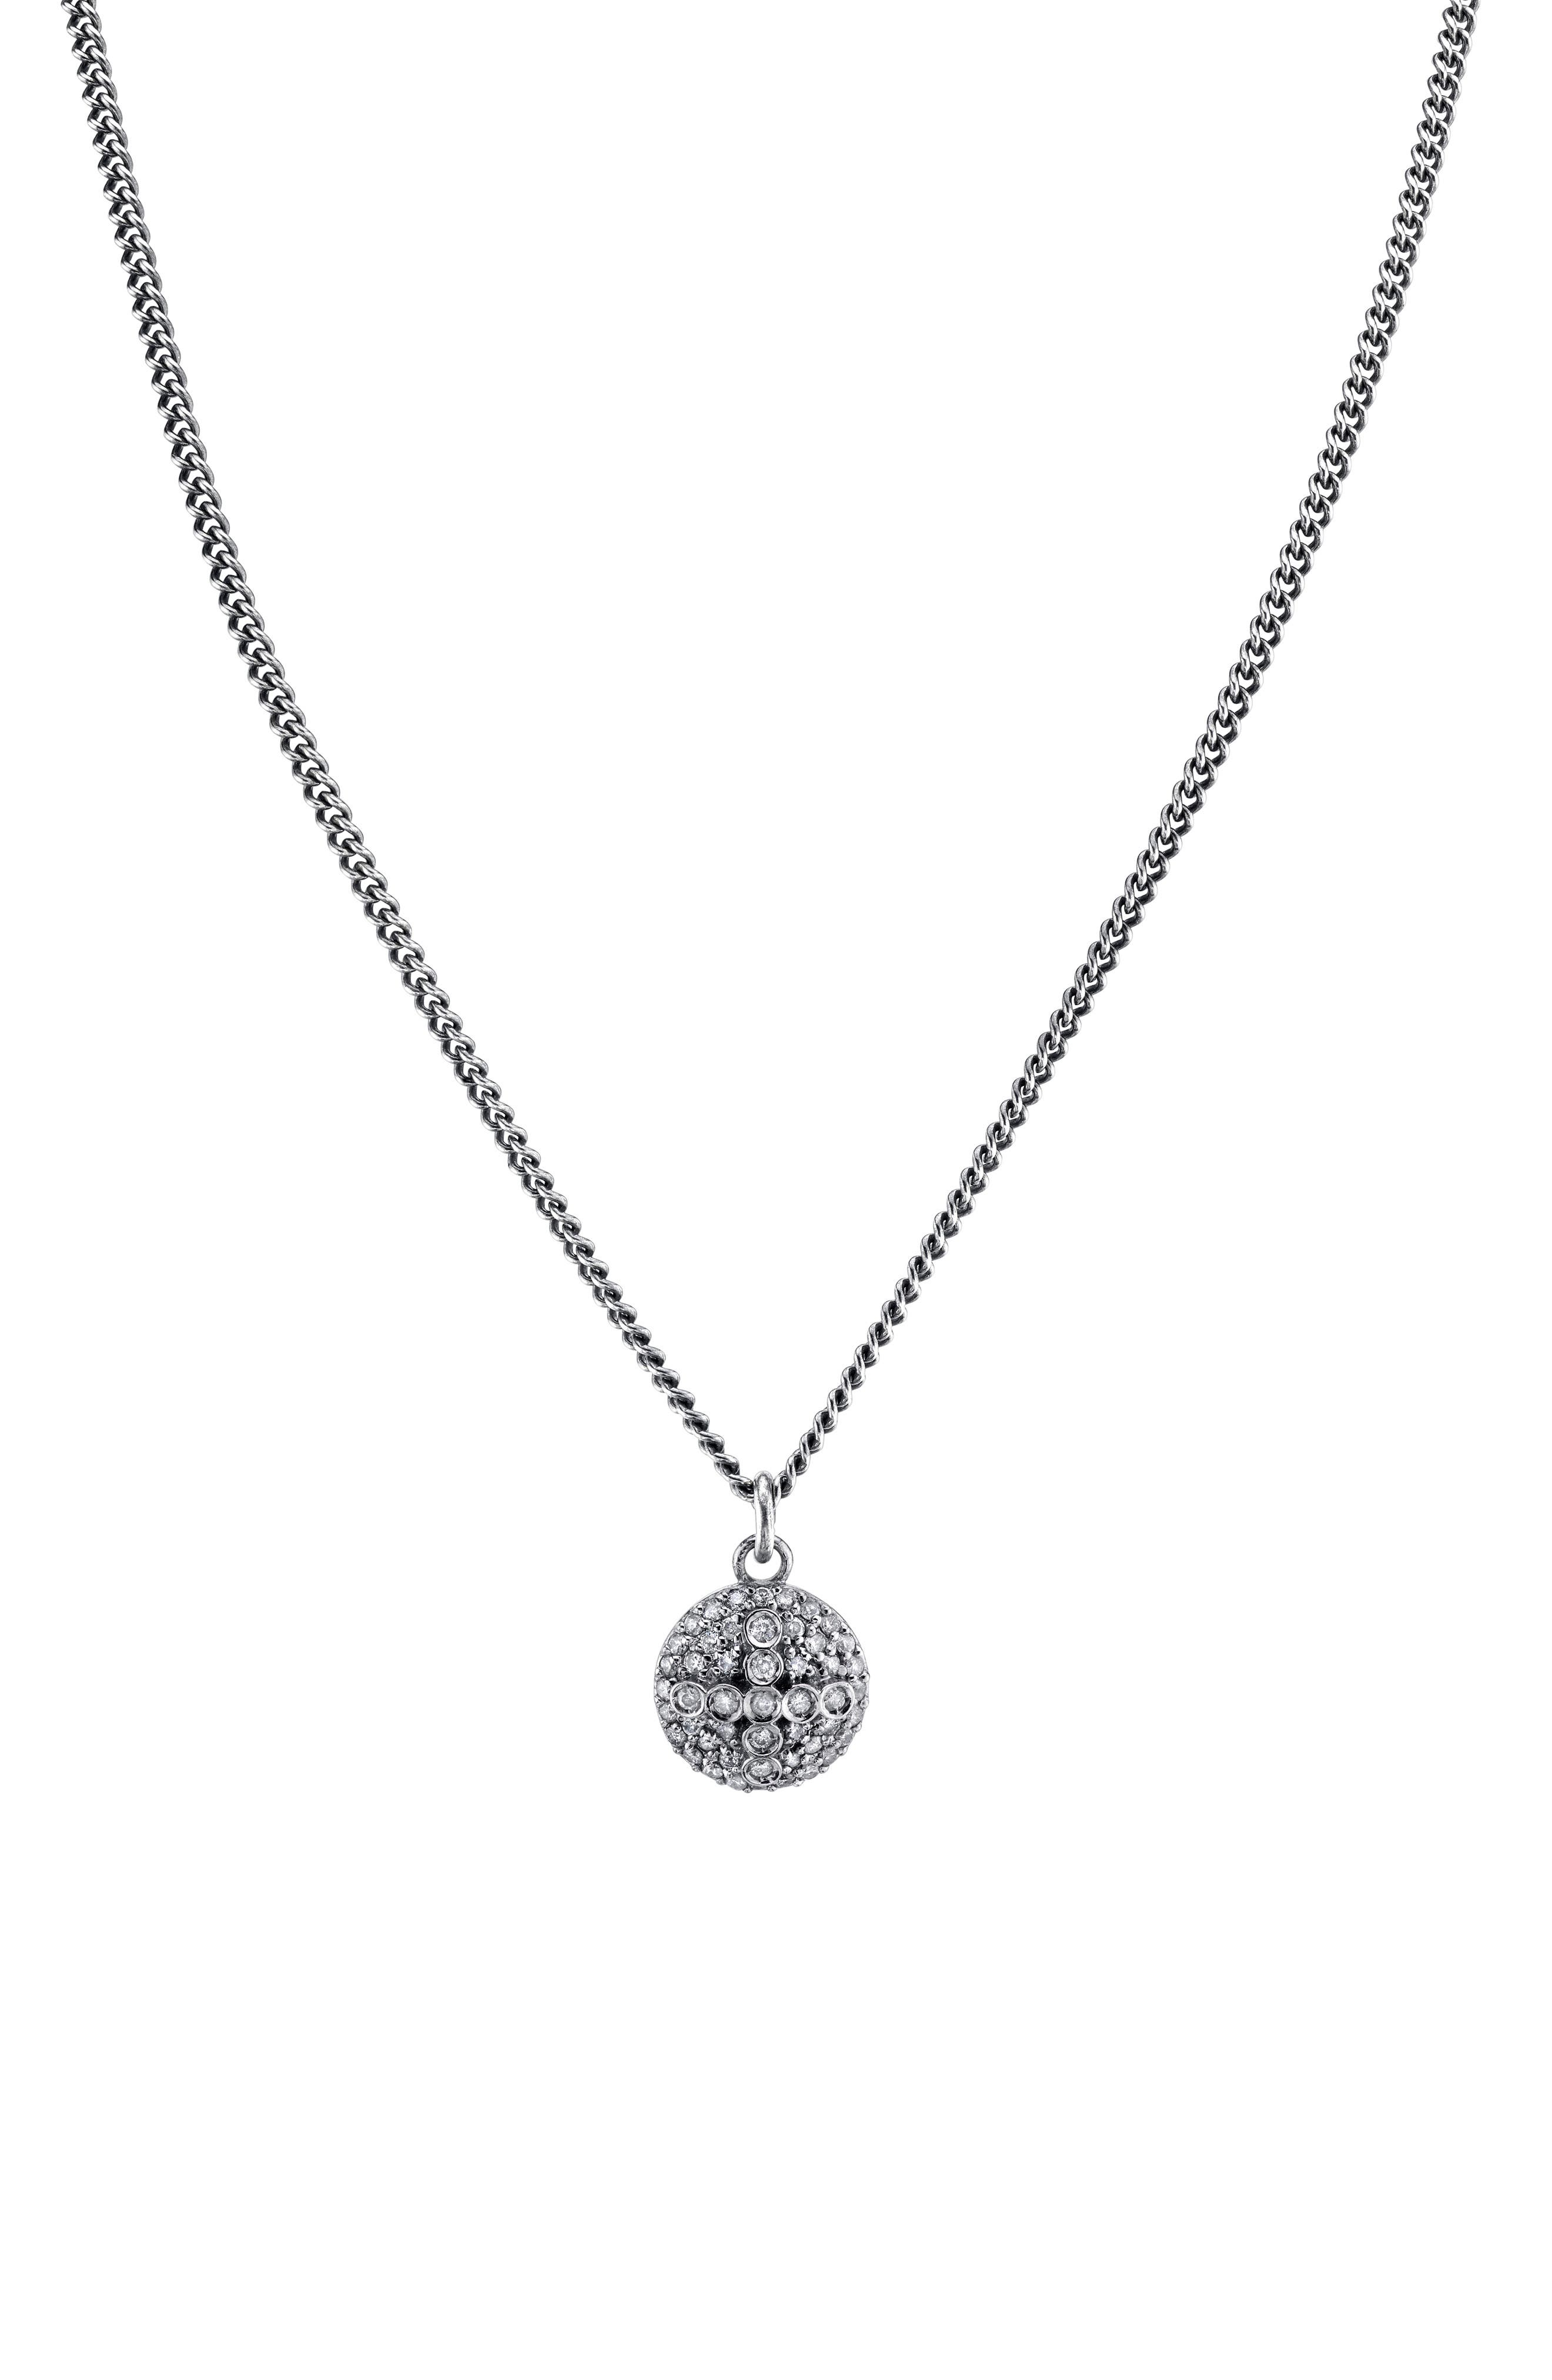 Pave Dome Cross Pendant Necklace in Sterling Silver